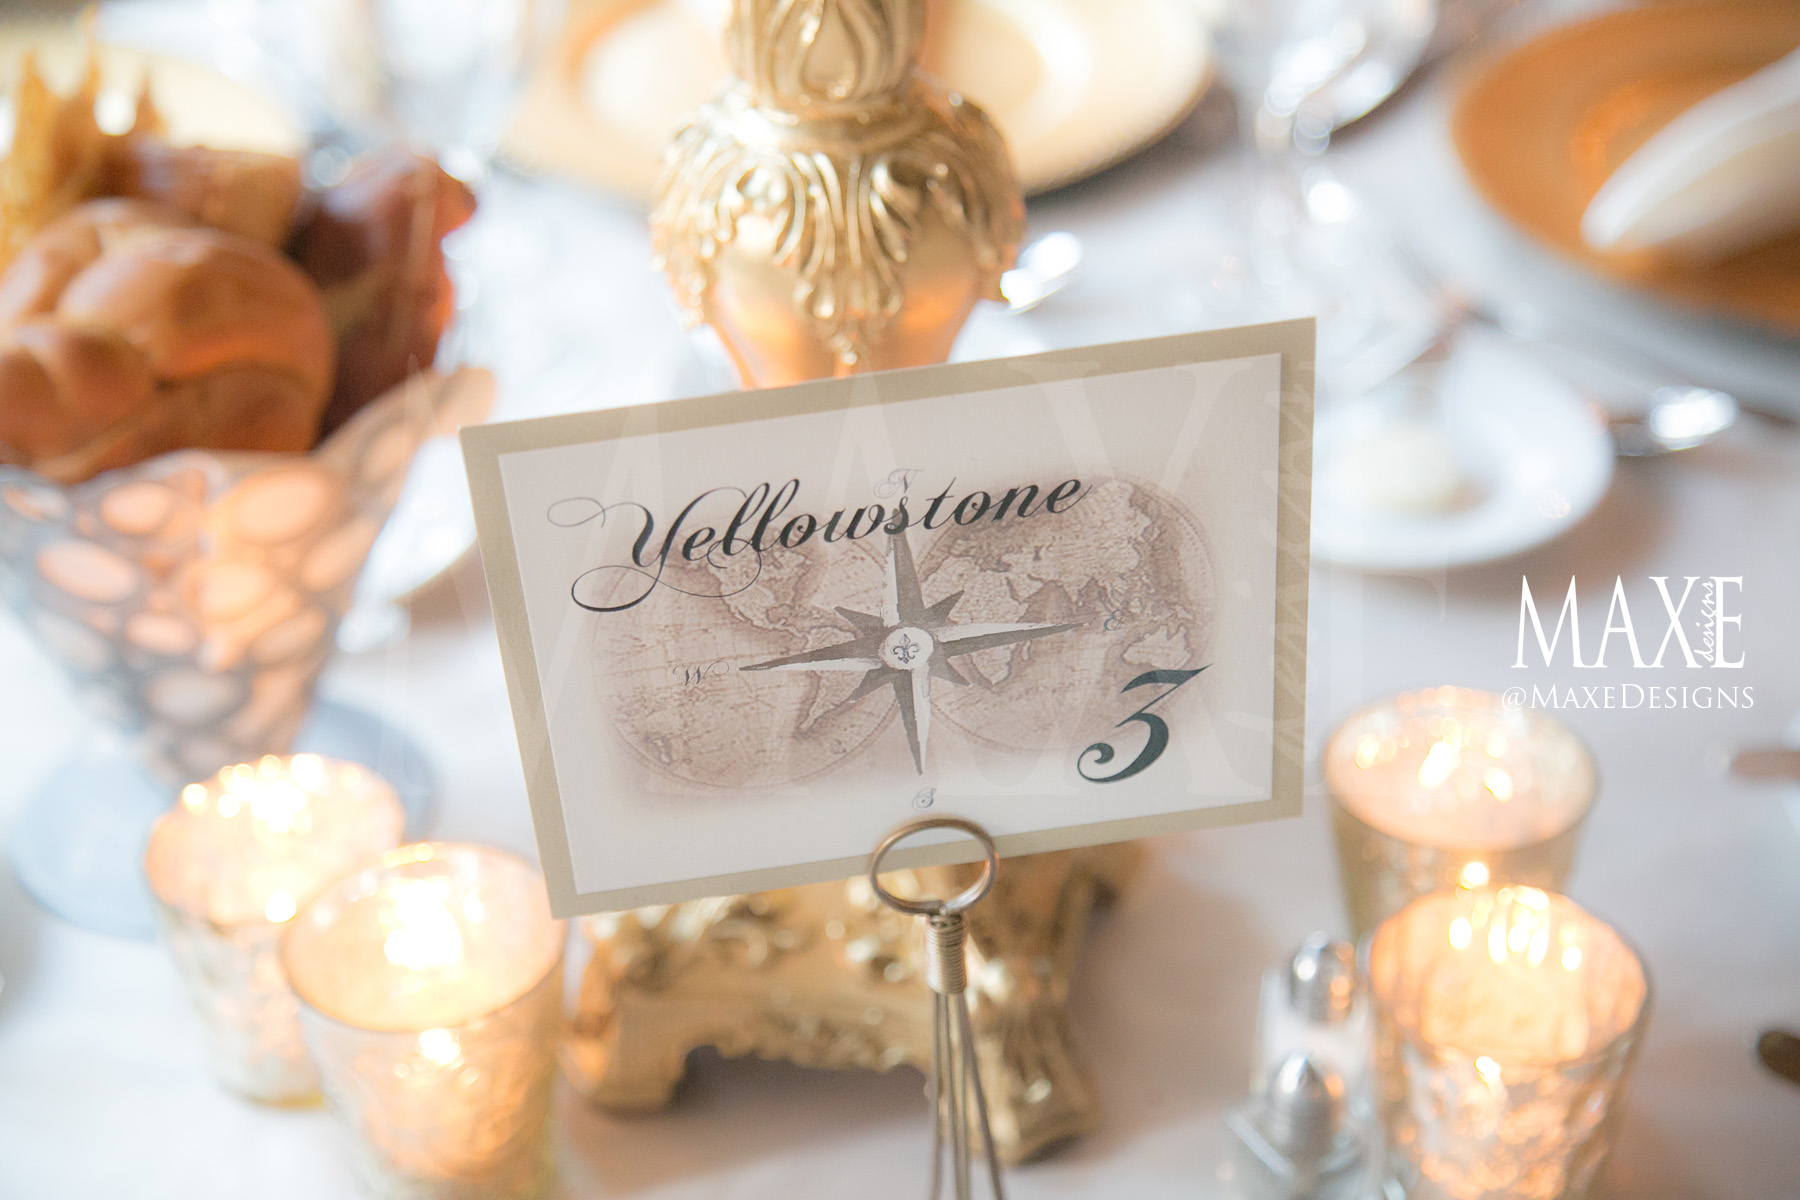 Kirsten & Dan complemented their décor with table numbers including their favorite vacation destinations.